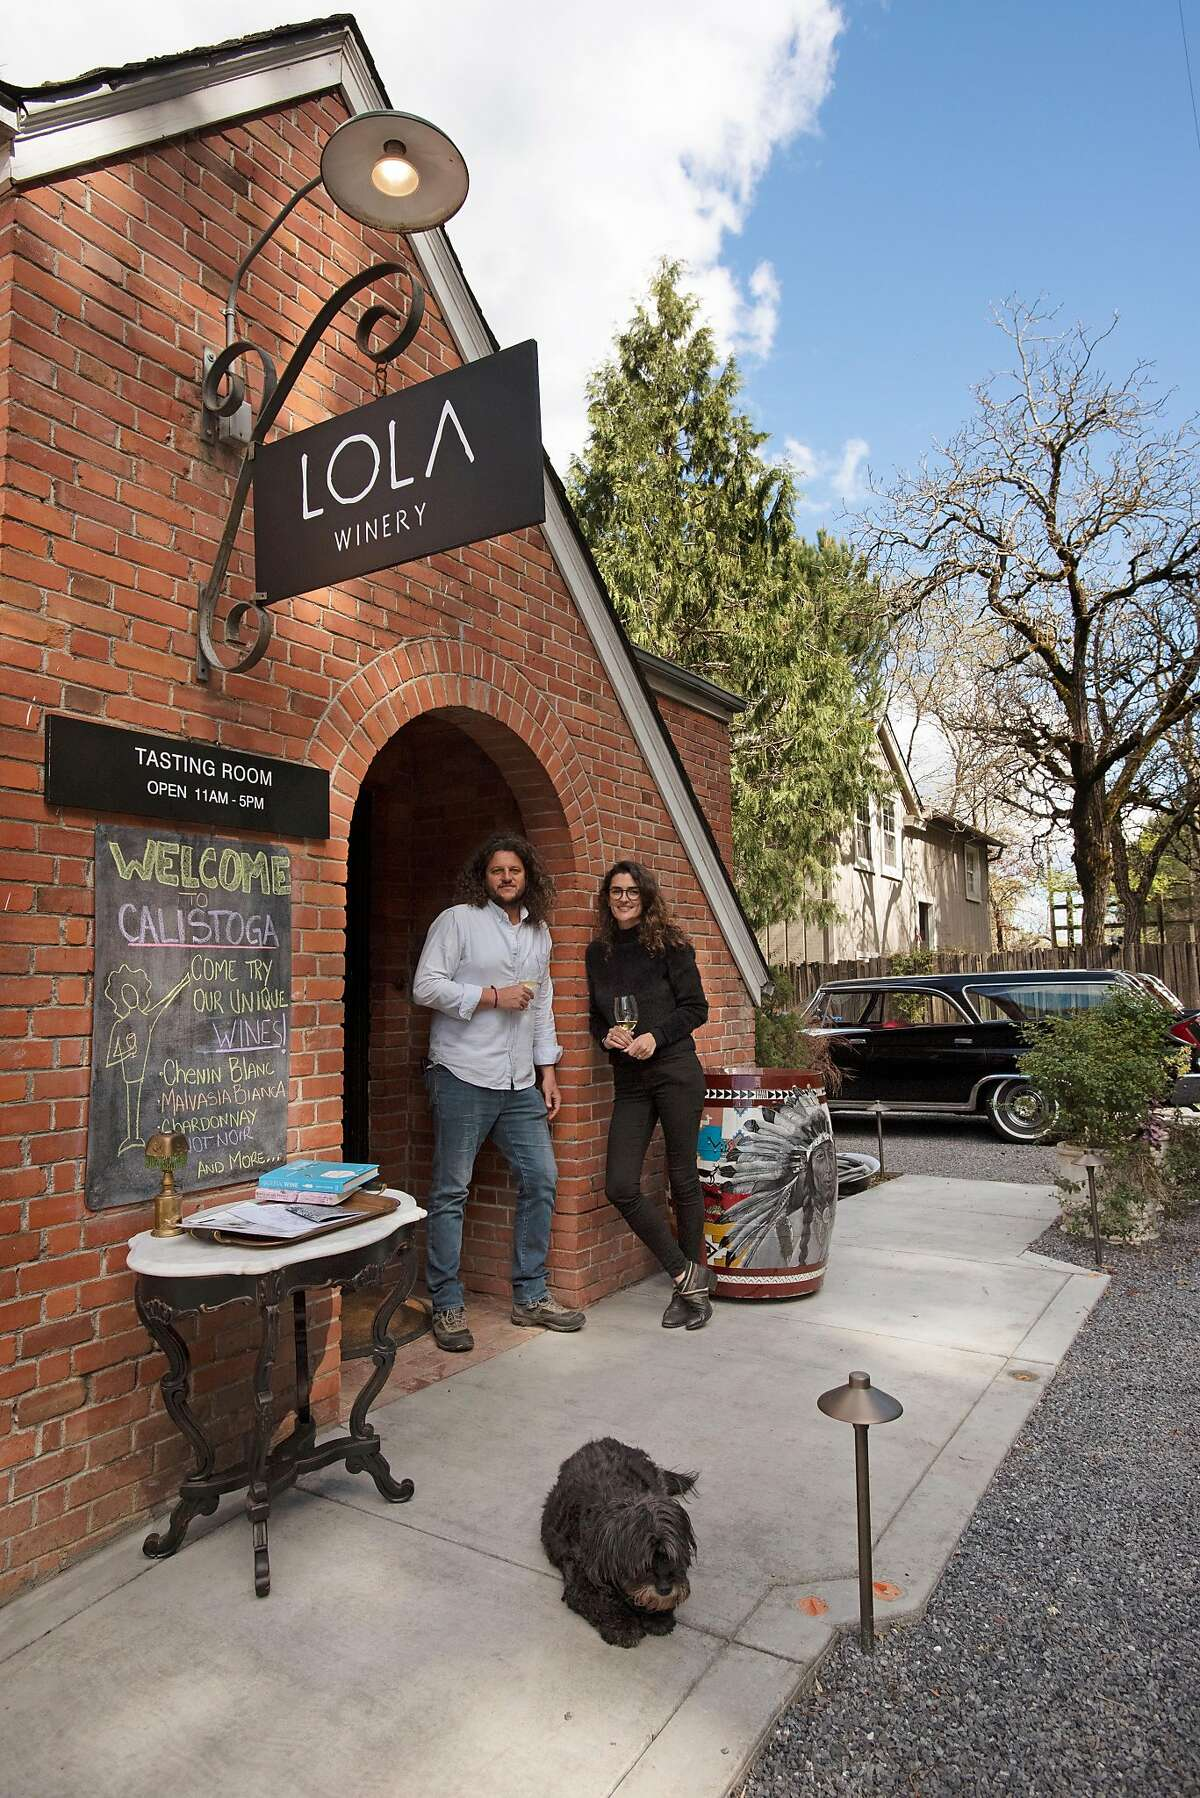 Seth Cripe and Rafaela Costa with their dog Lola at Lola Wines tasting room located in an 1890s building in Calistoga, California, on Thursday, March 19, 2020.